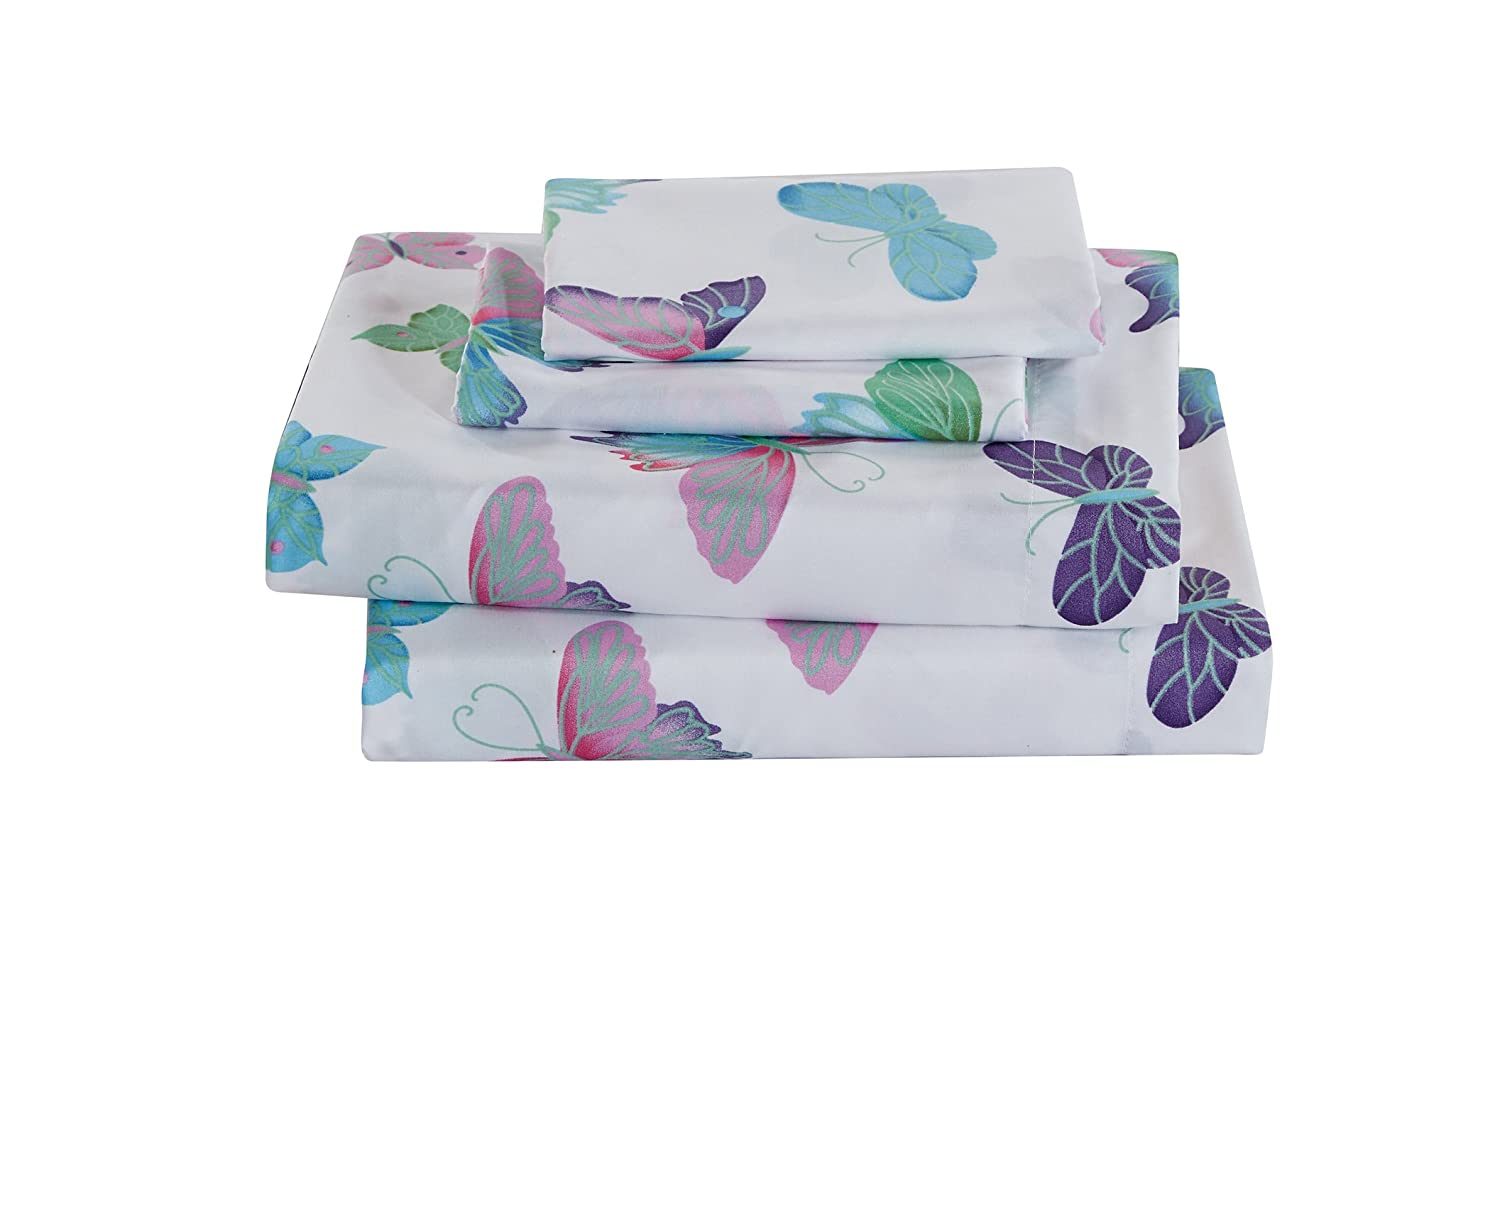 Linen Plus Full Size 4pc Sheet Set for Girls Butterflies Purple White Green Turquoise Pink New